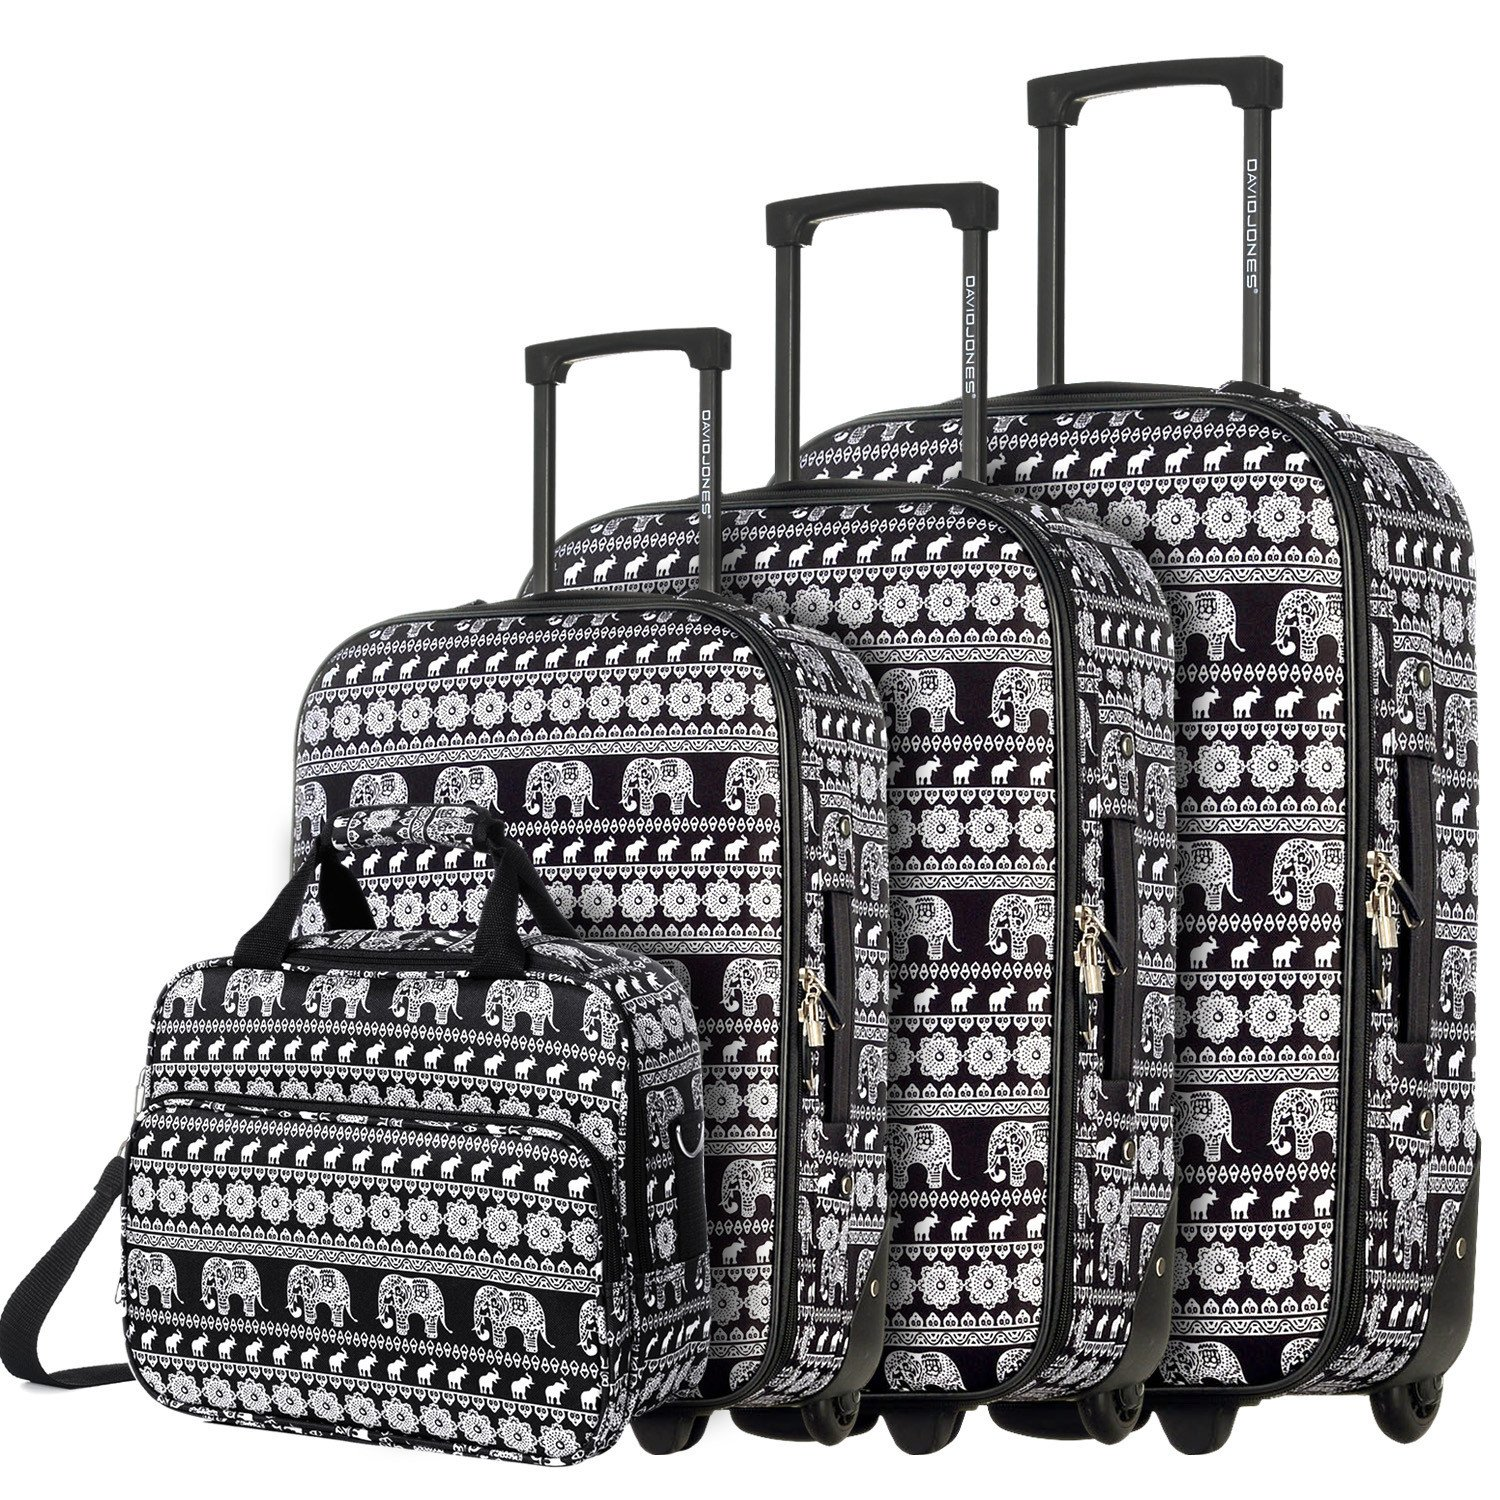 DAVIDJONES Vintage Print 4 Piece Luggage Set-Elephant Black